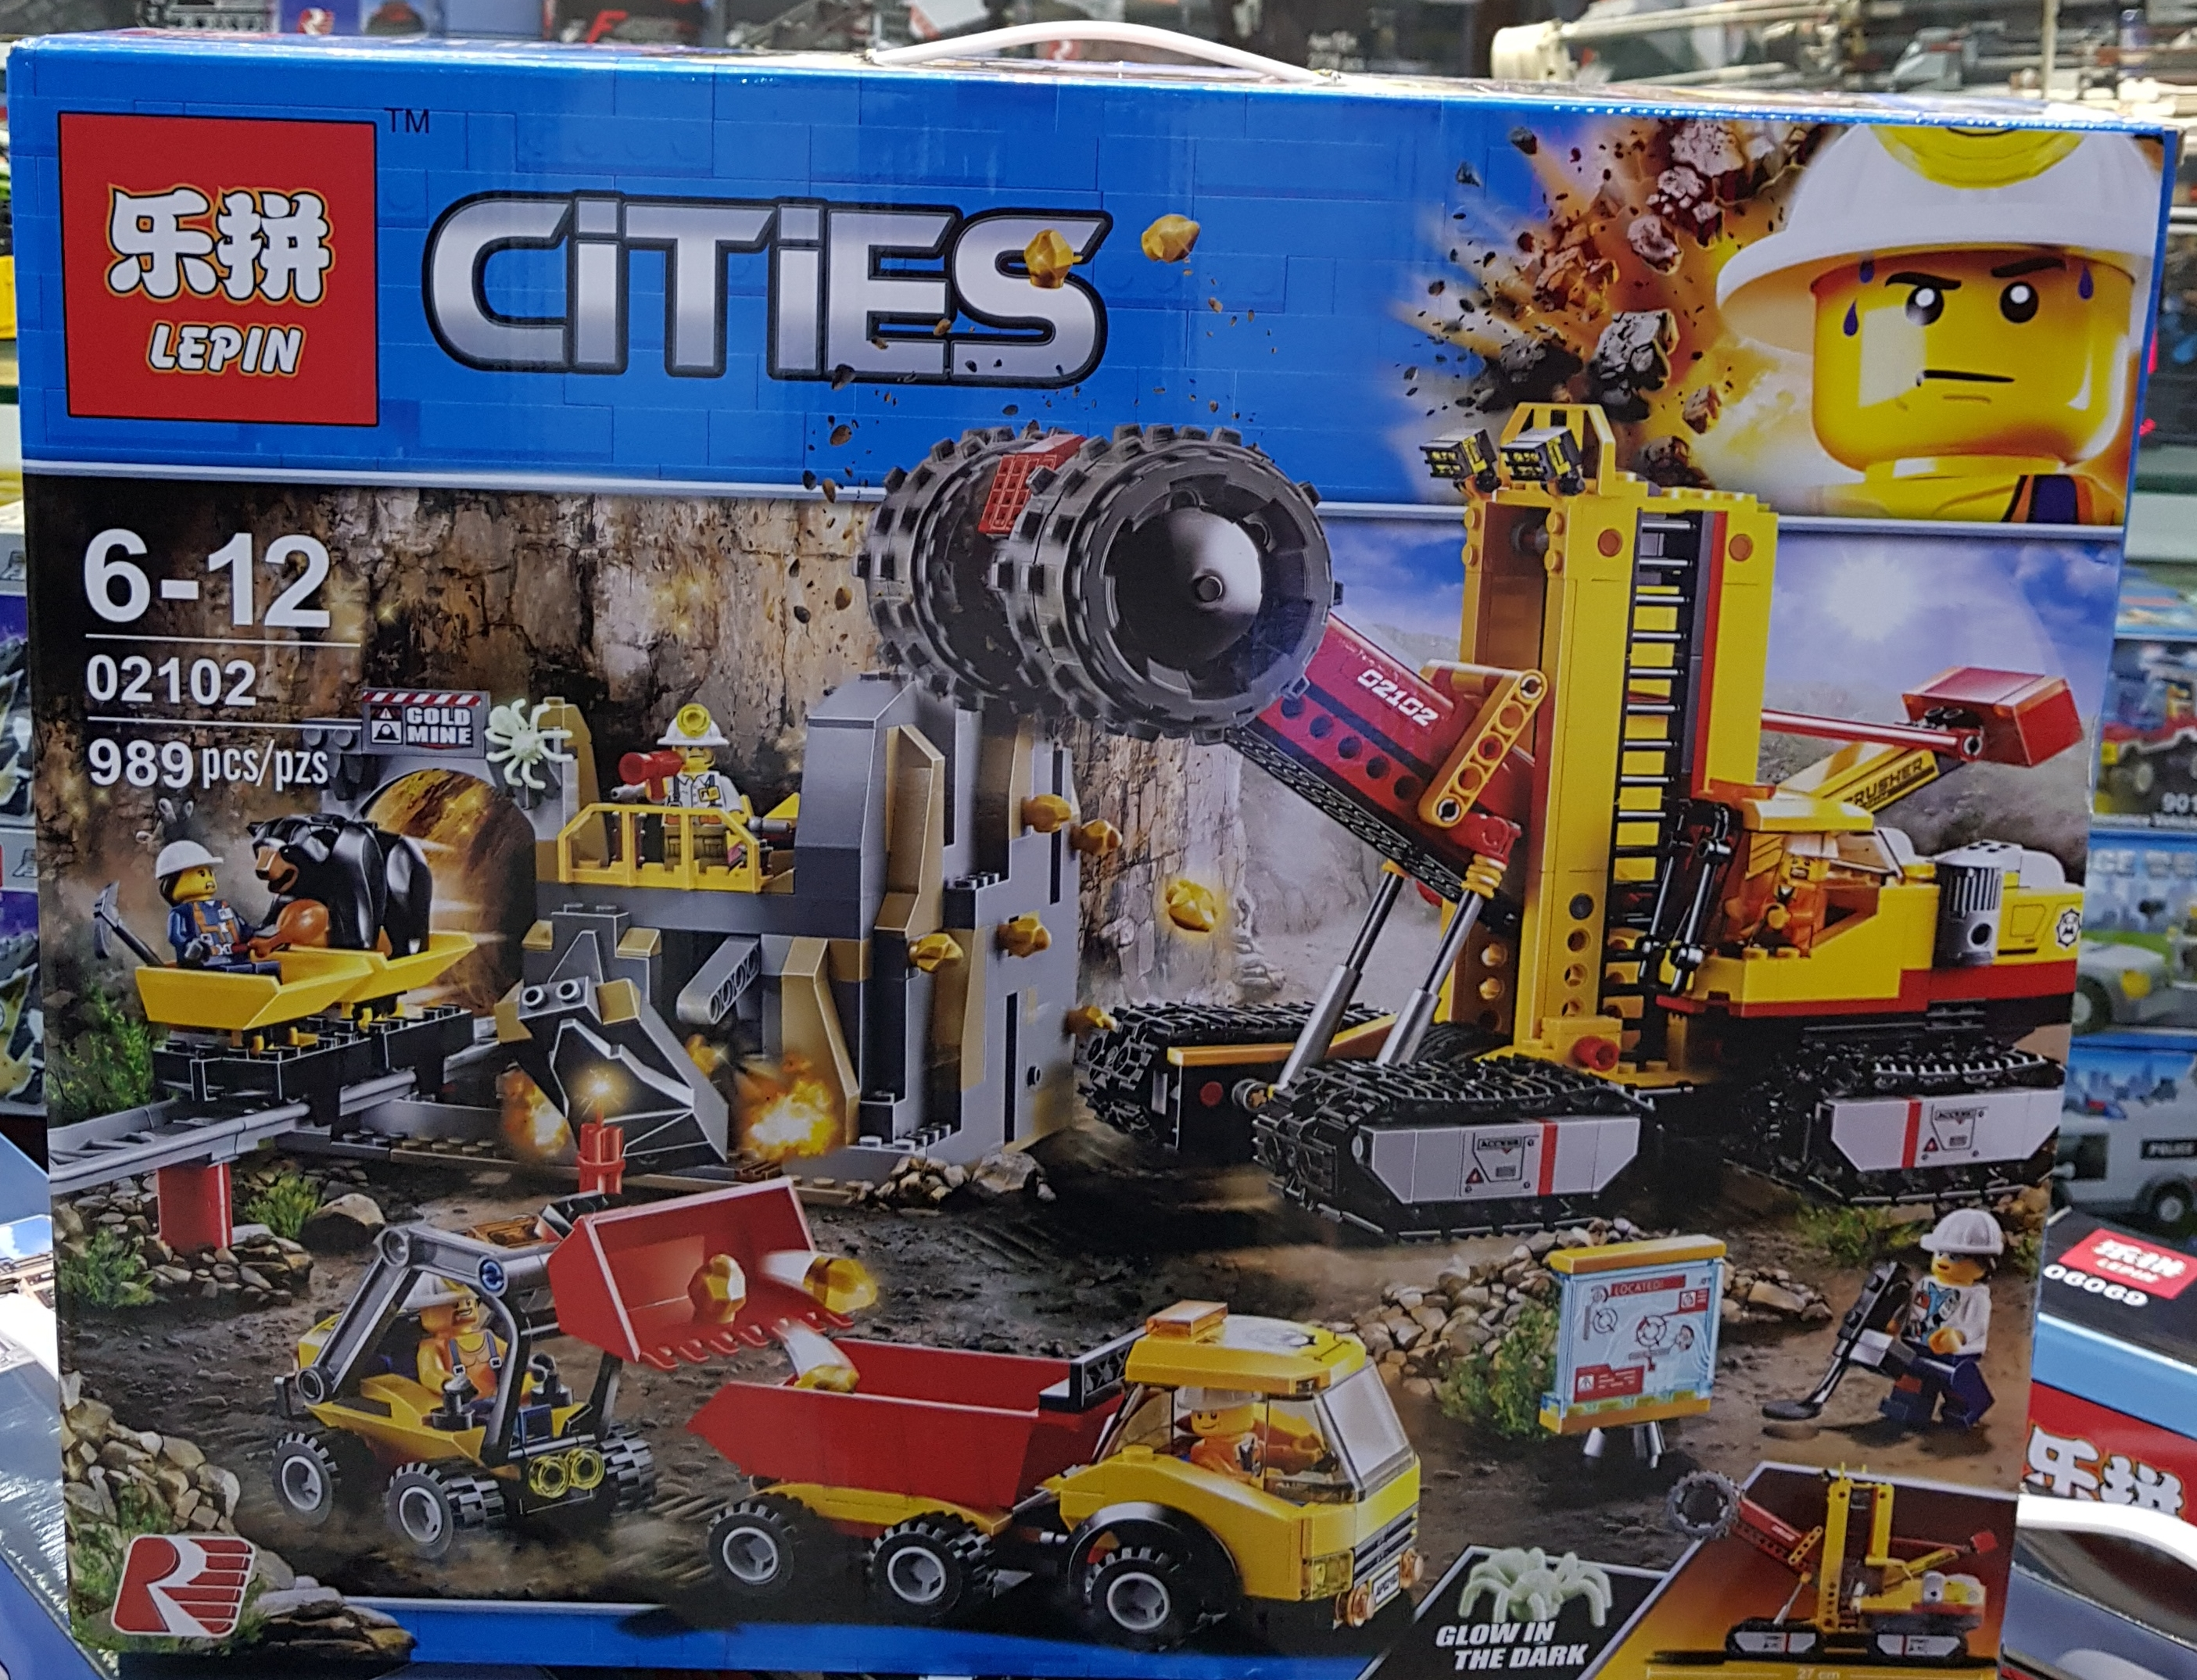 LEPIN Cities The Mining Experts 02102 (989ชิ้น)